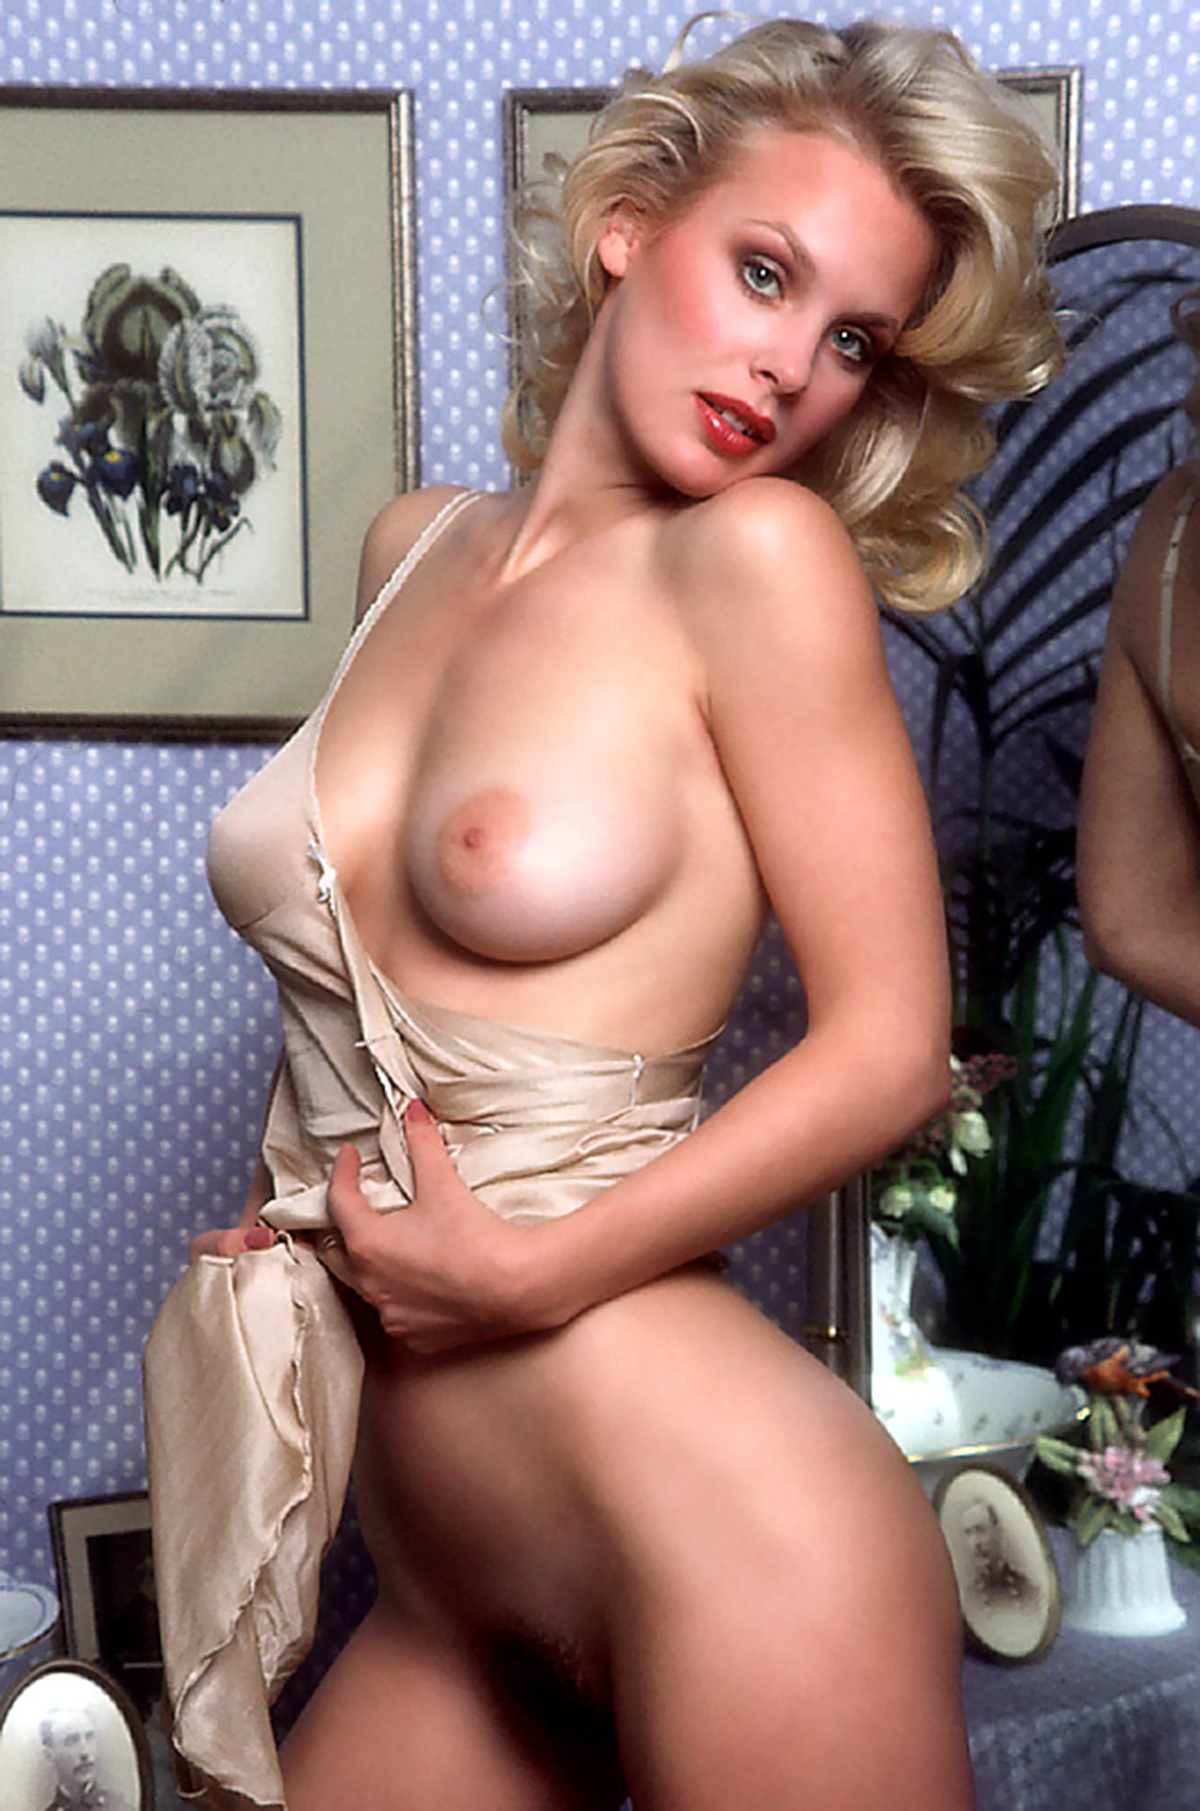 Dorothy stratten playmate of the year seems